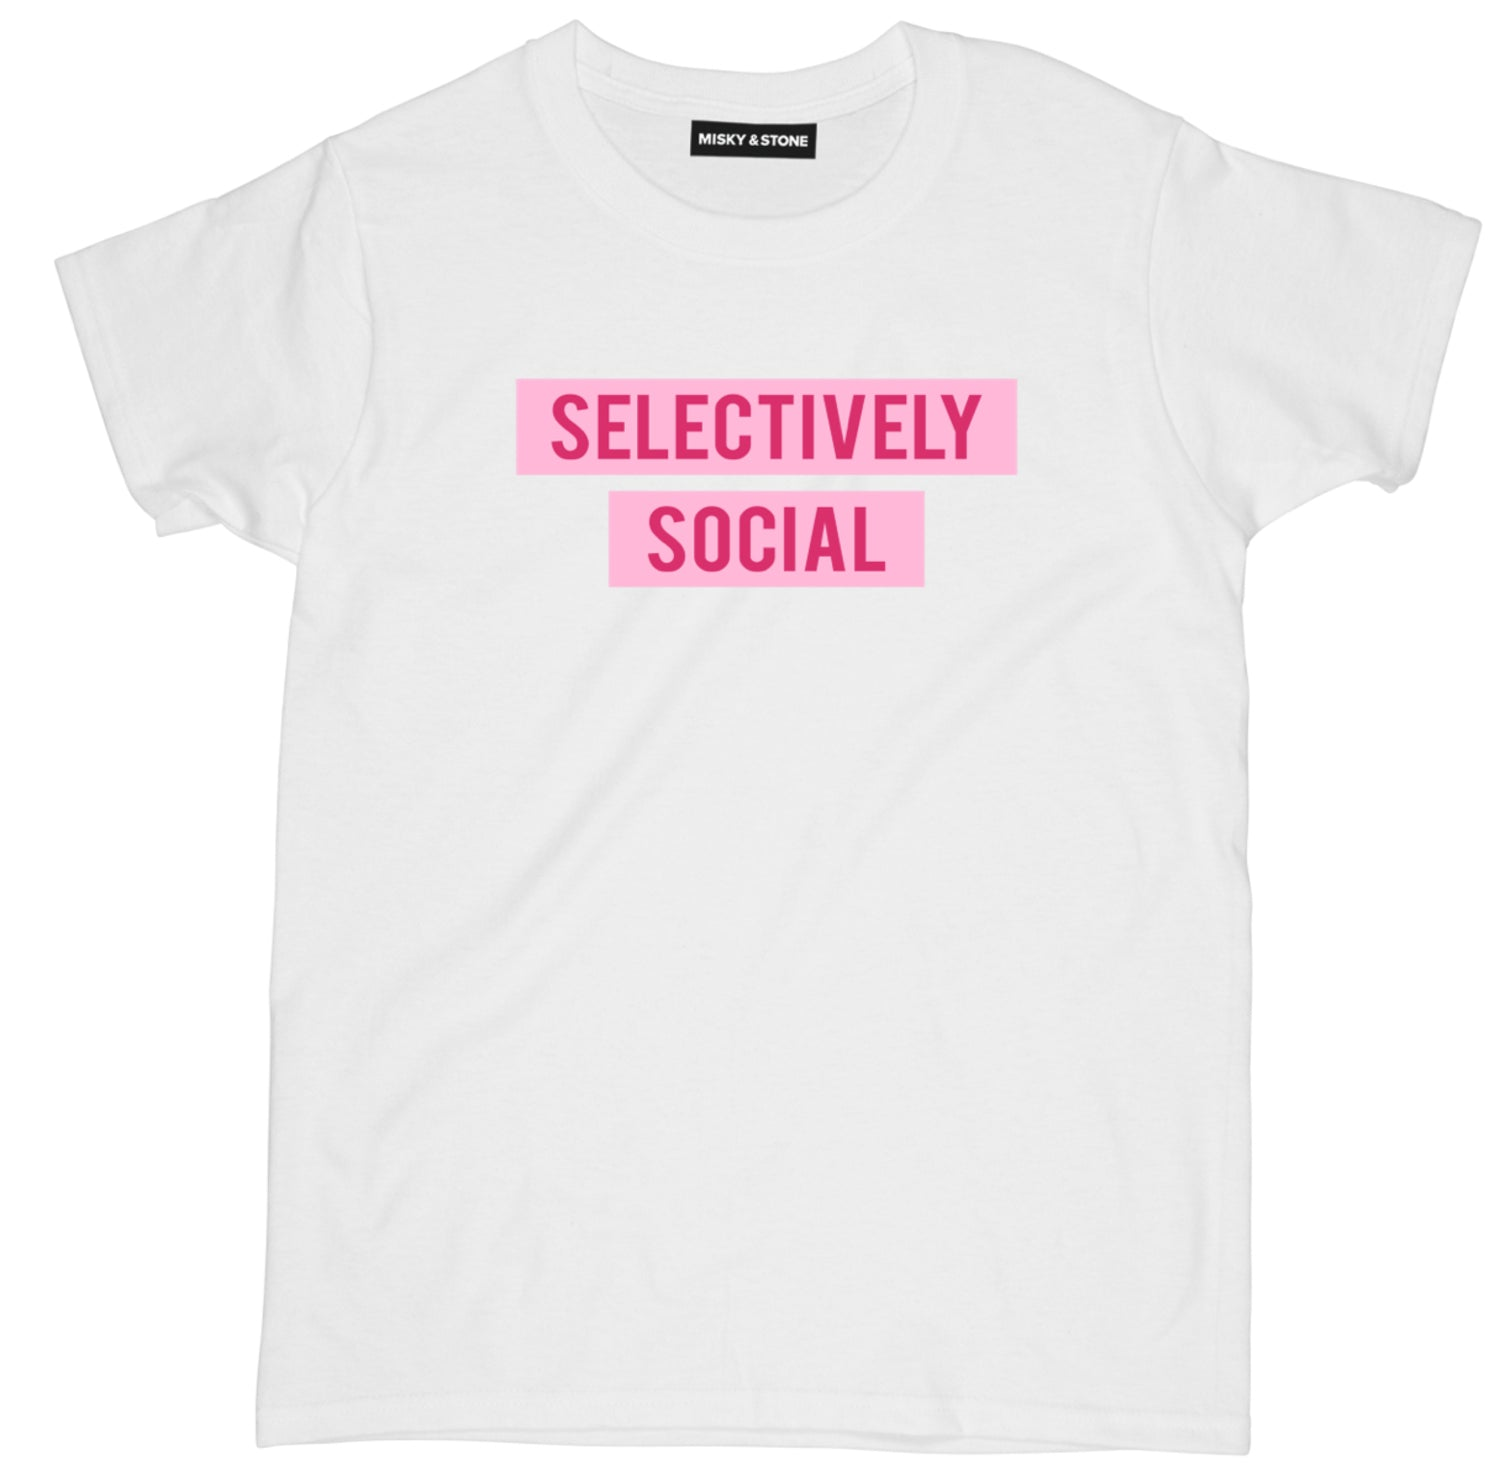 selectively social t shirt, selectively social shirt, sassy t shirt, sassy shirt,